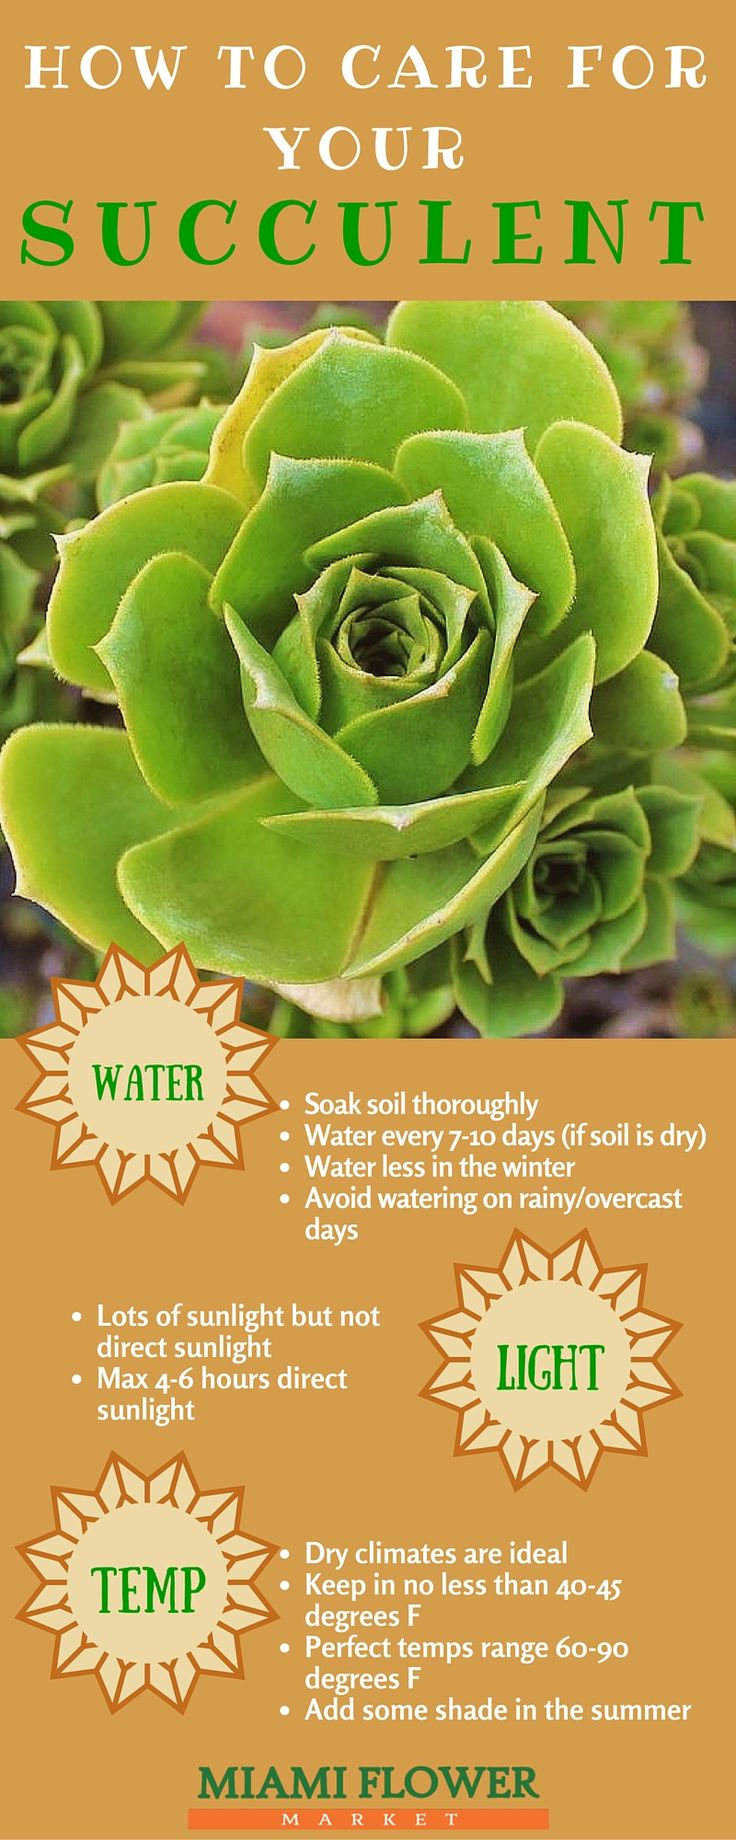 How to care for your succulents at home!